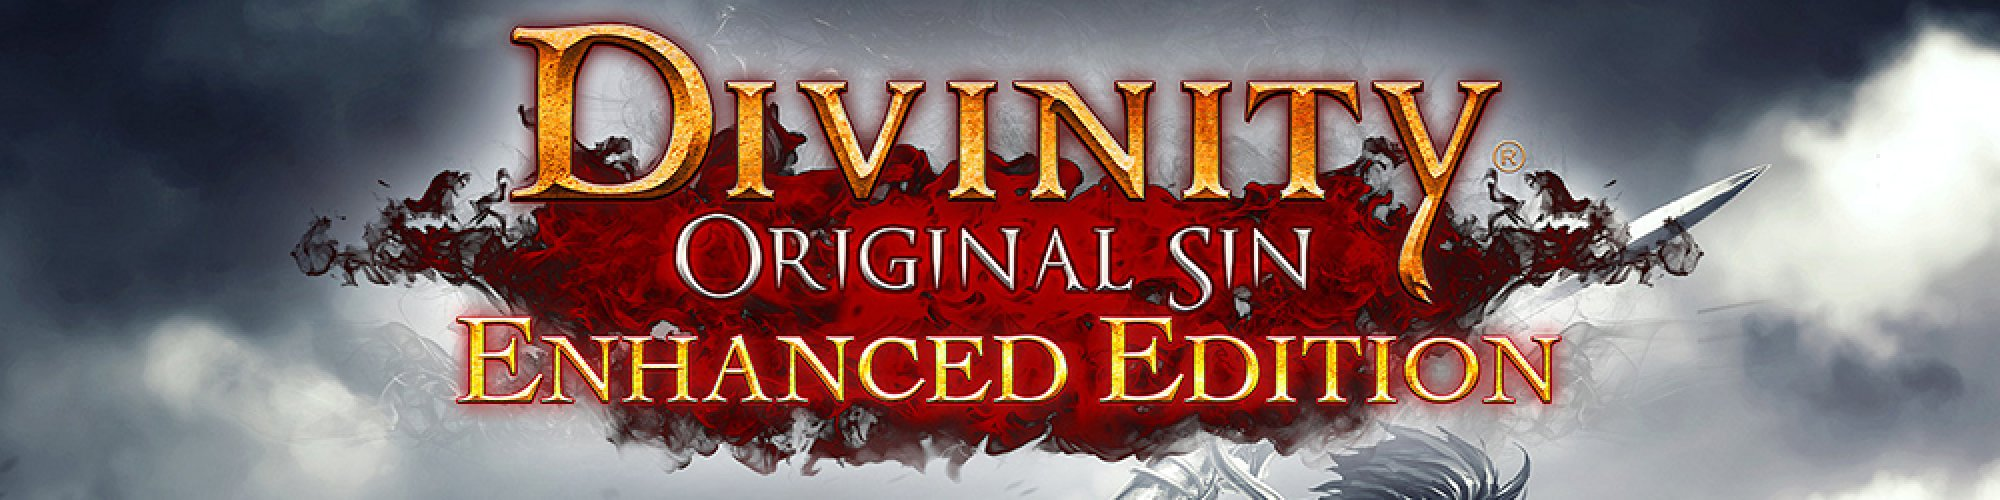 Divinity Original Sin Enhanced Edition banner